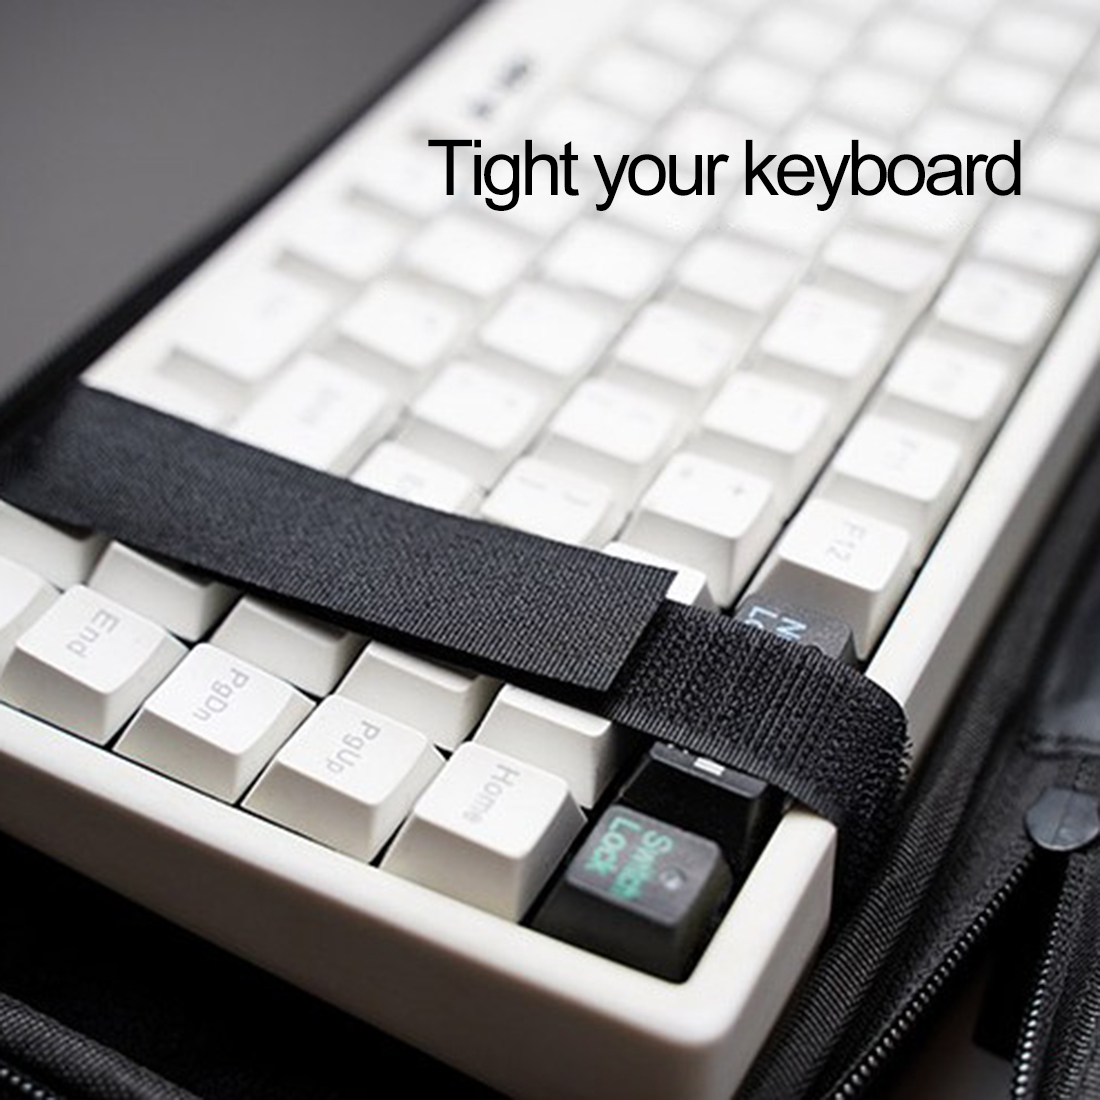 87 Keys Keyboard Storage Bag Carrying Case for 60% 75% 80% Mechanical Keyboard